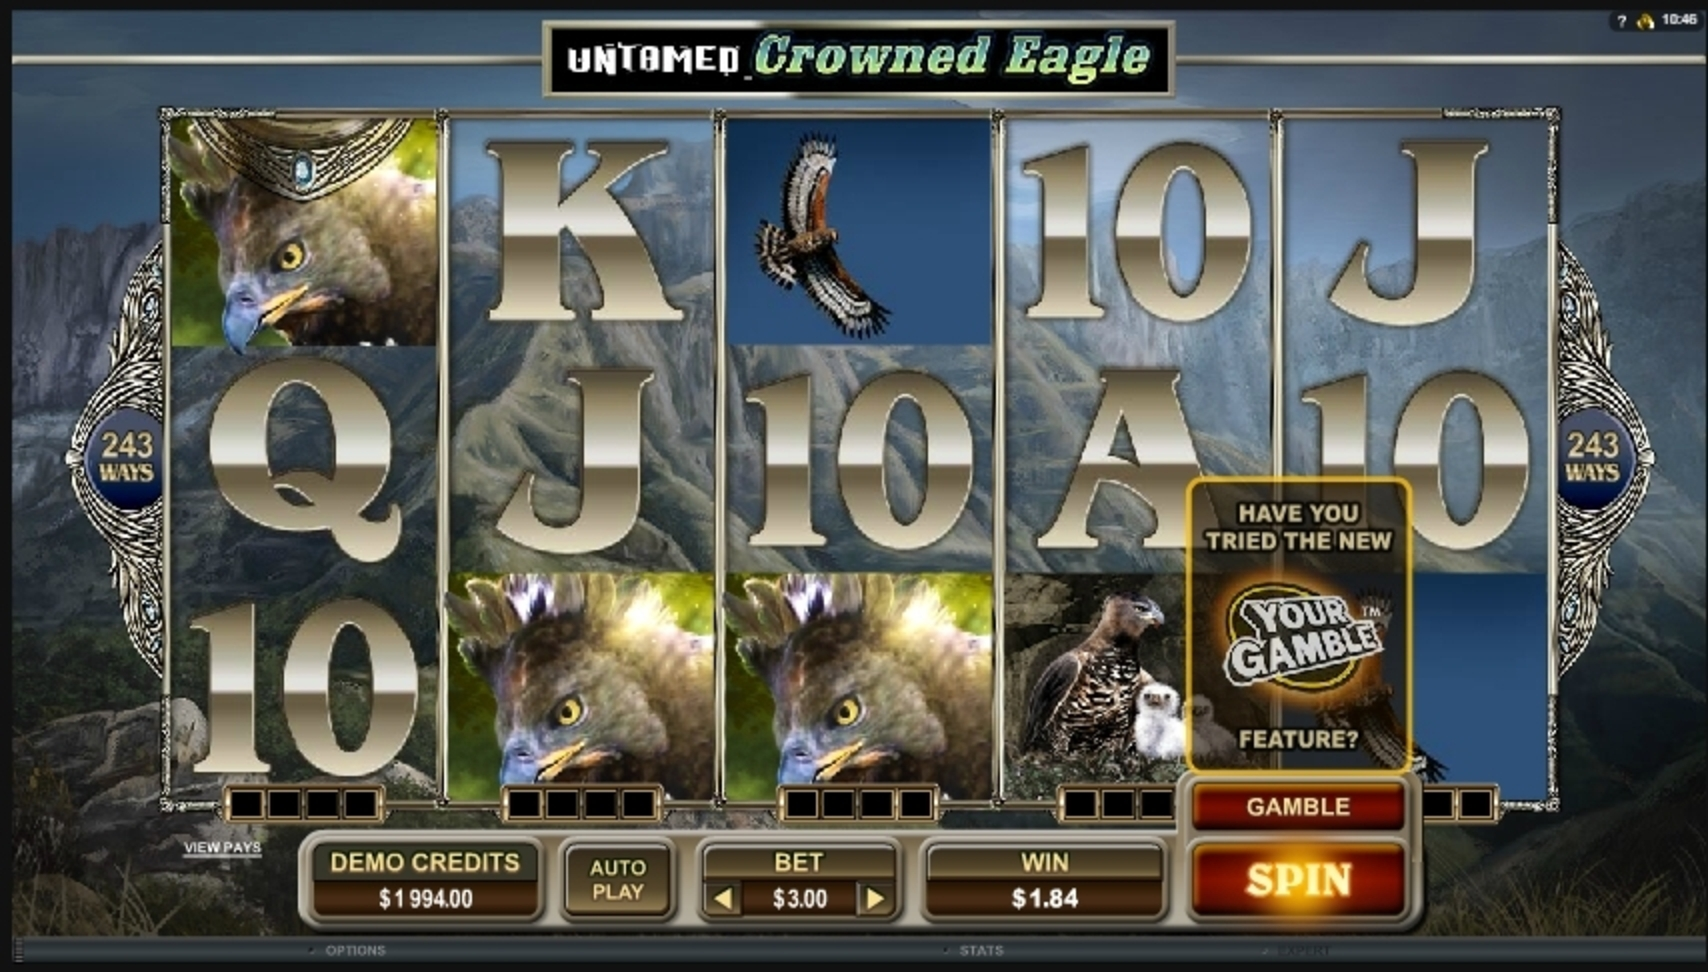 Win Money in Untamed Crowned Eagle Free Slot Game by Microgaming